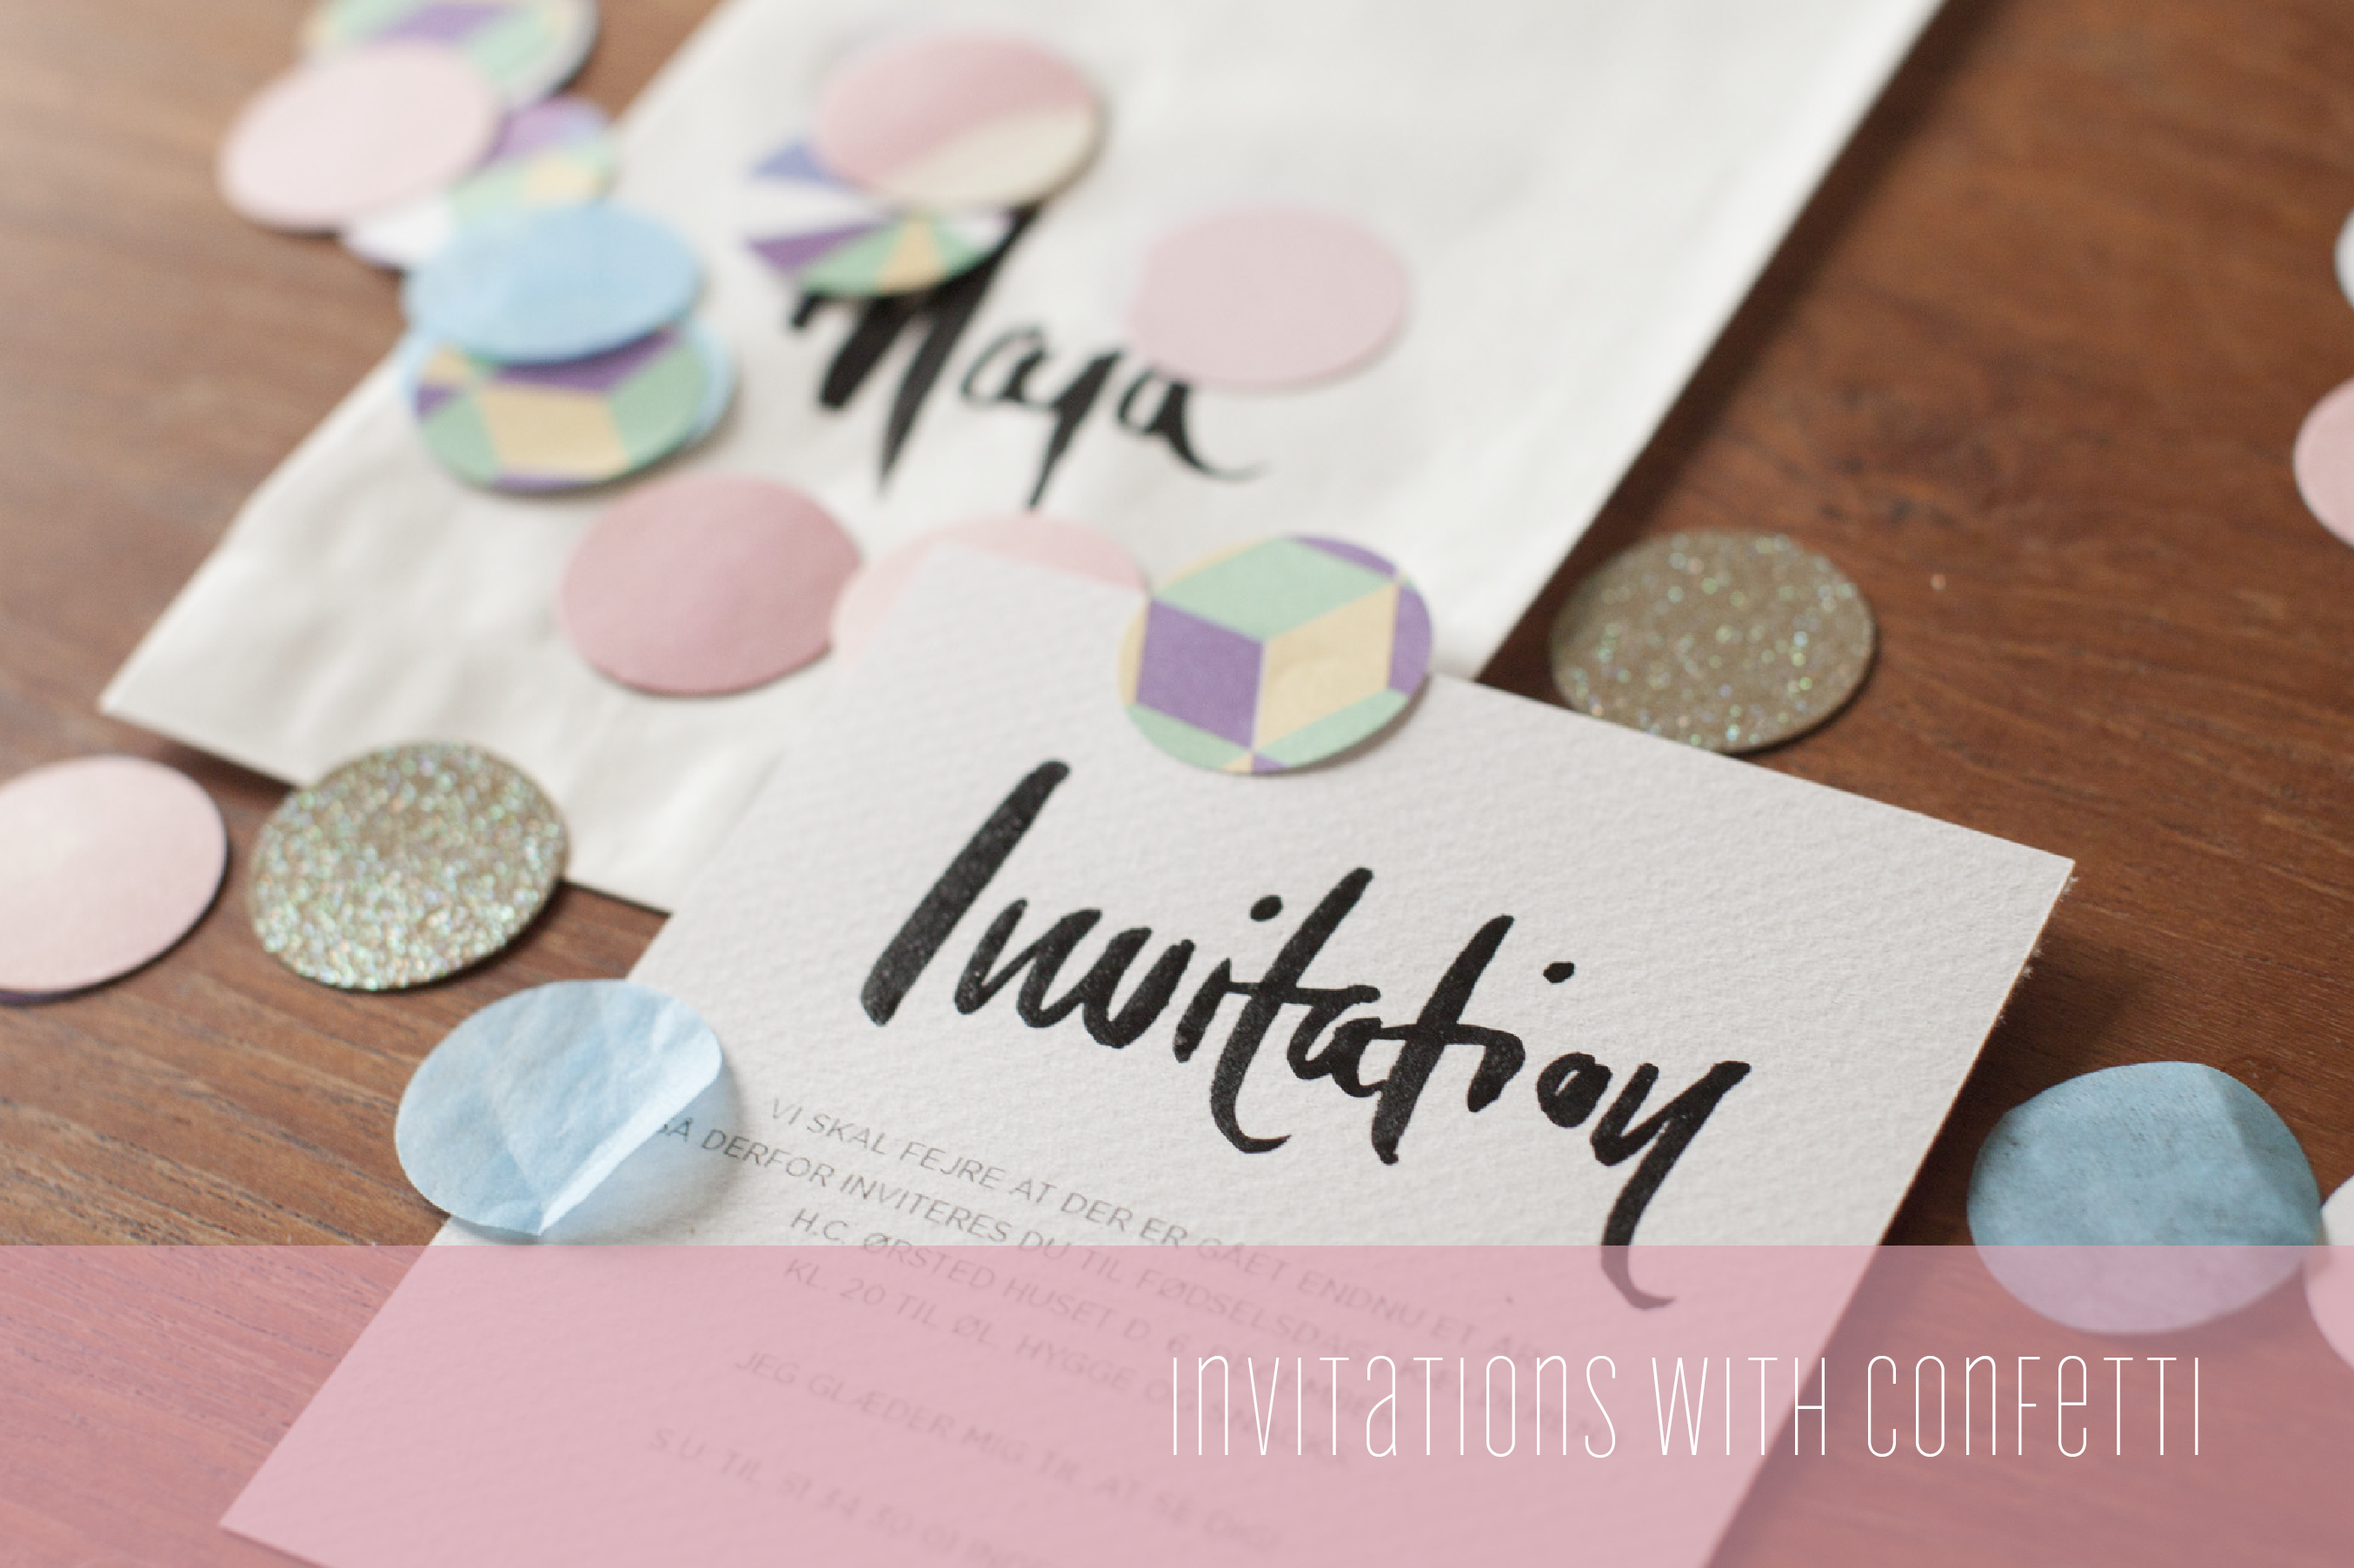 DIY_Invitationswithconfetti-01